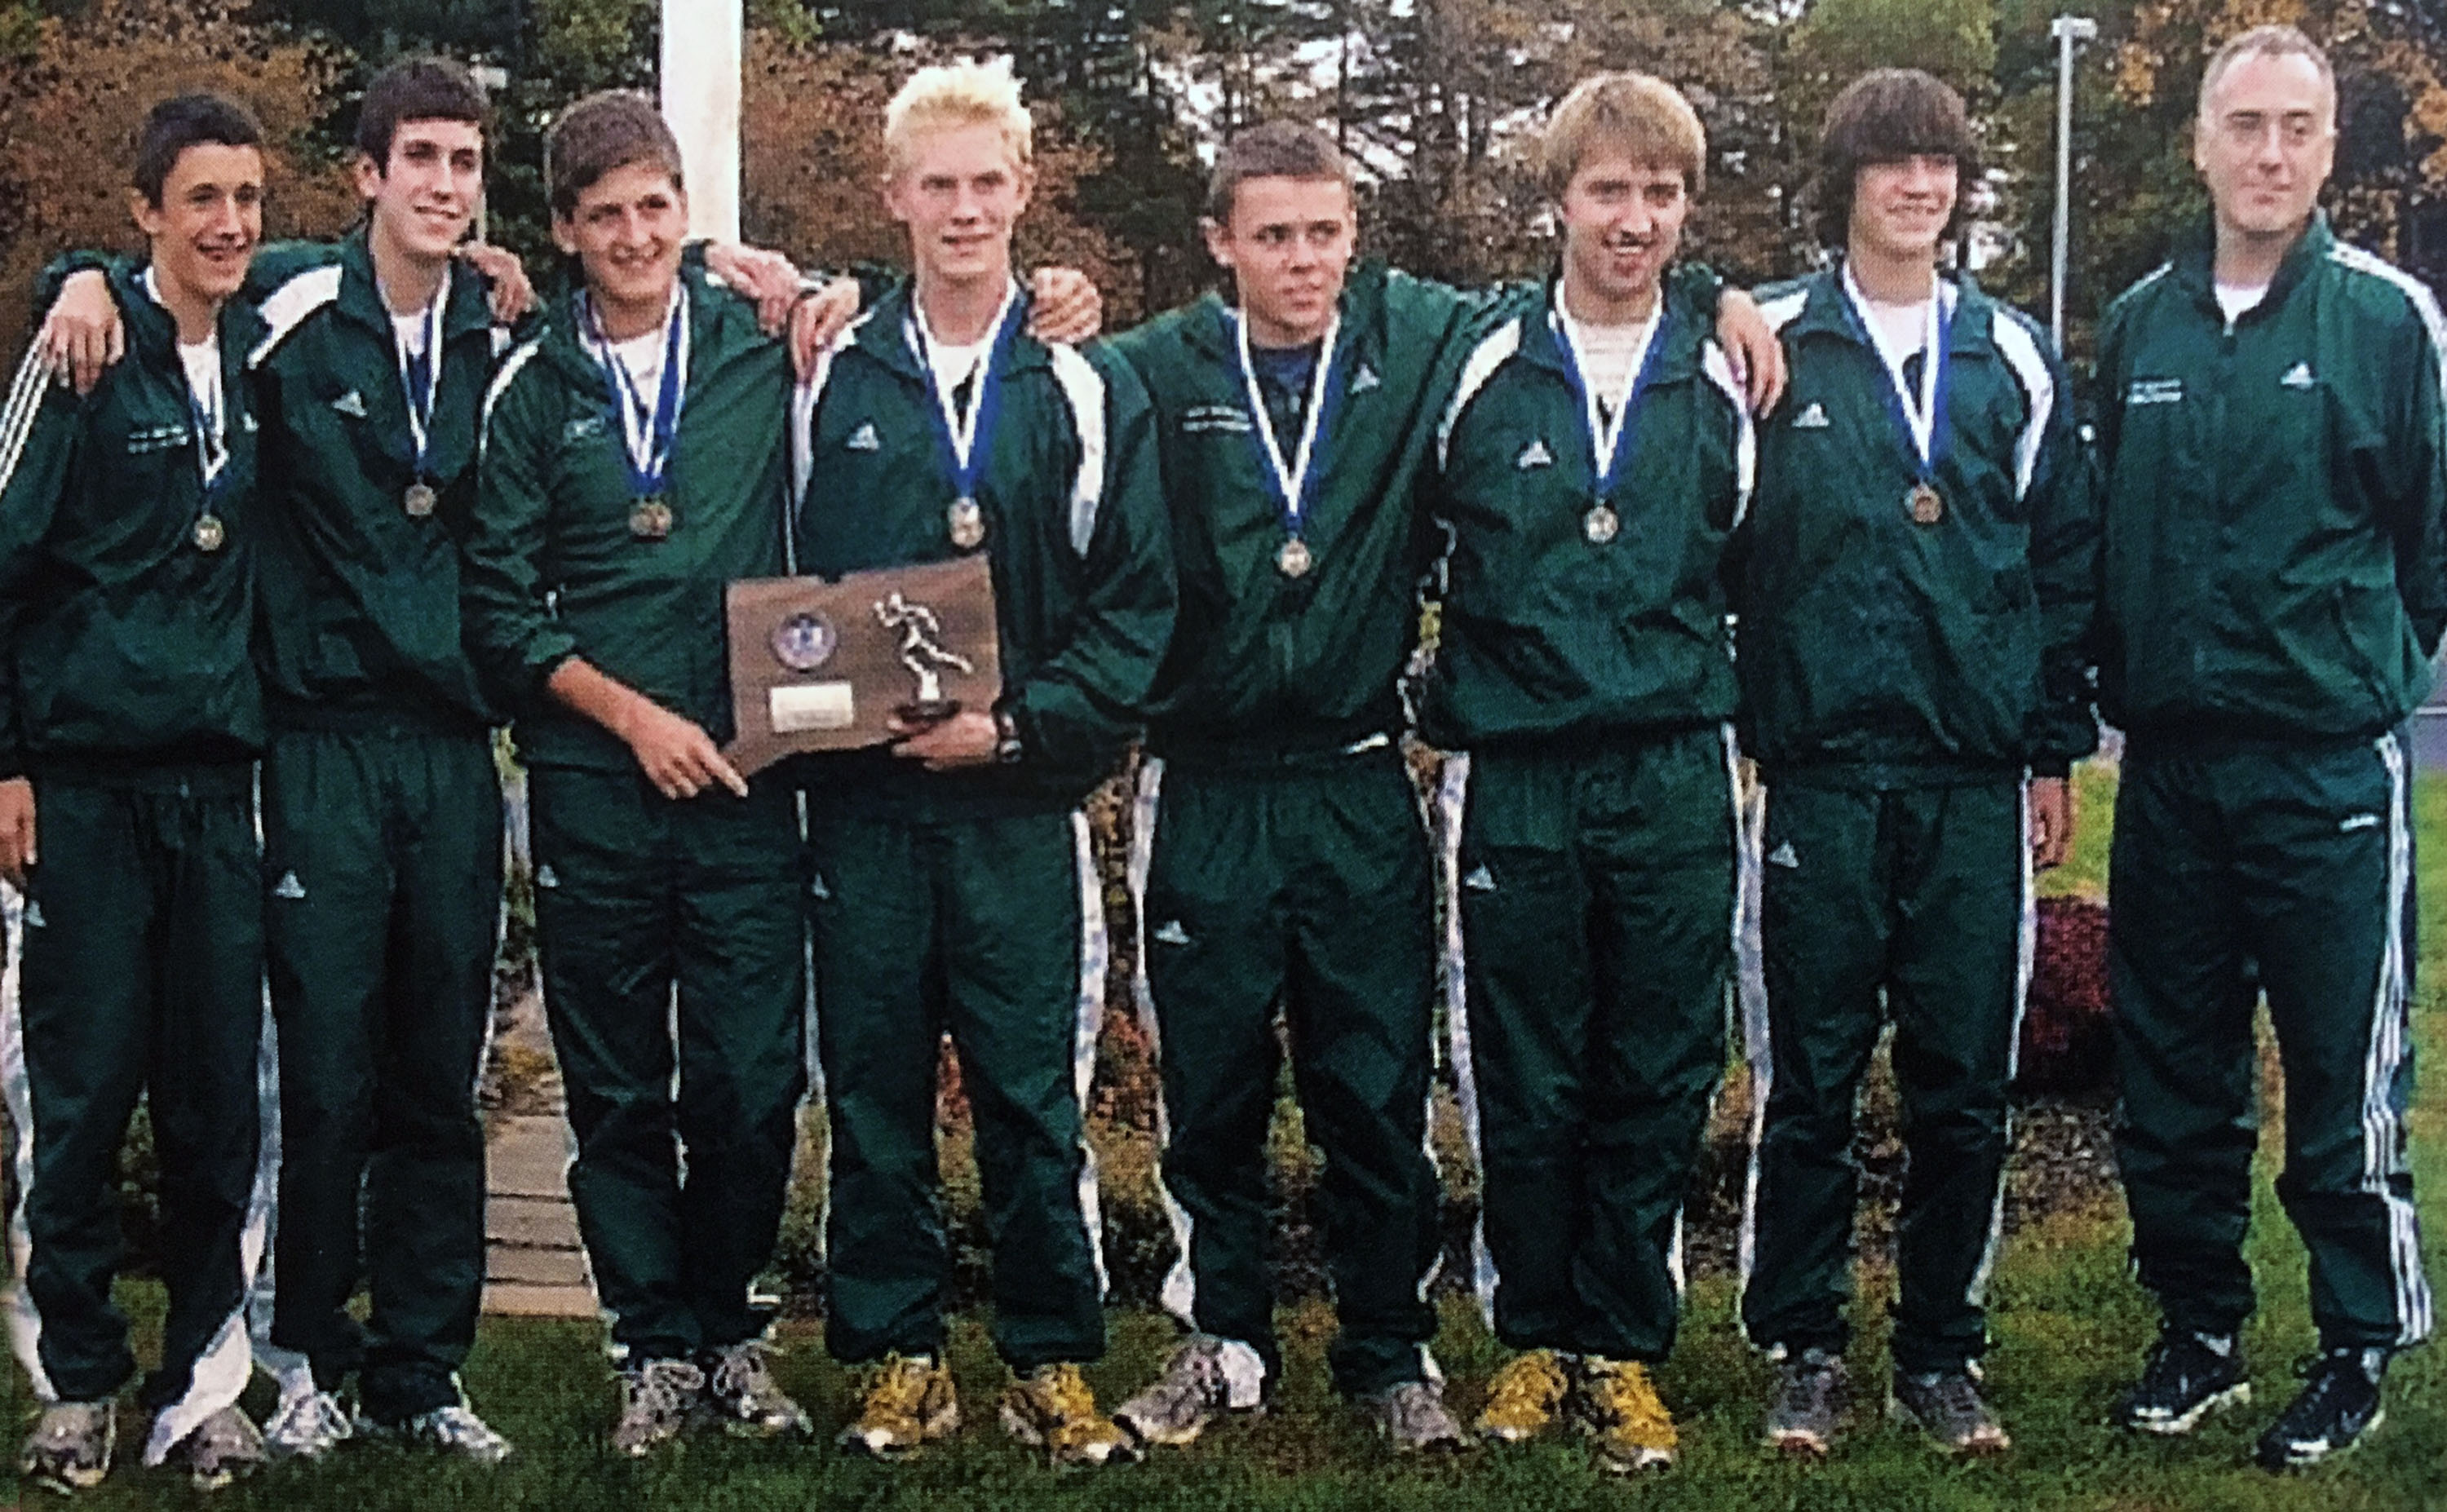 Green Wave boys' cross country 2007 state 'L' champions